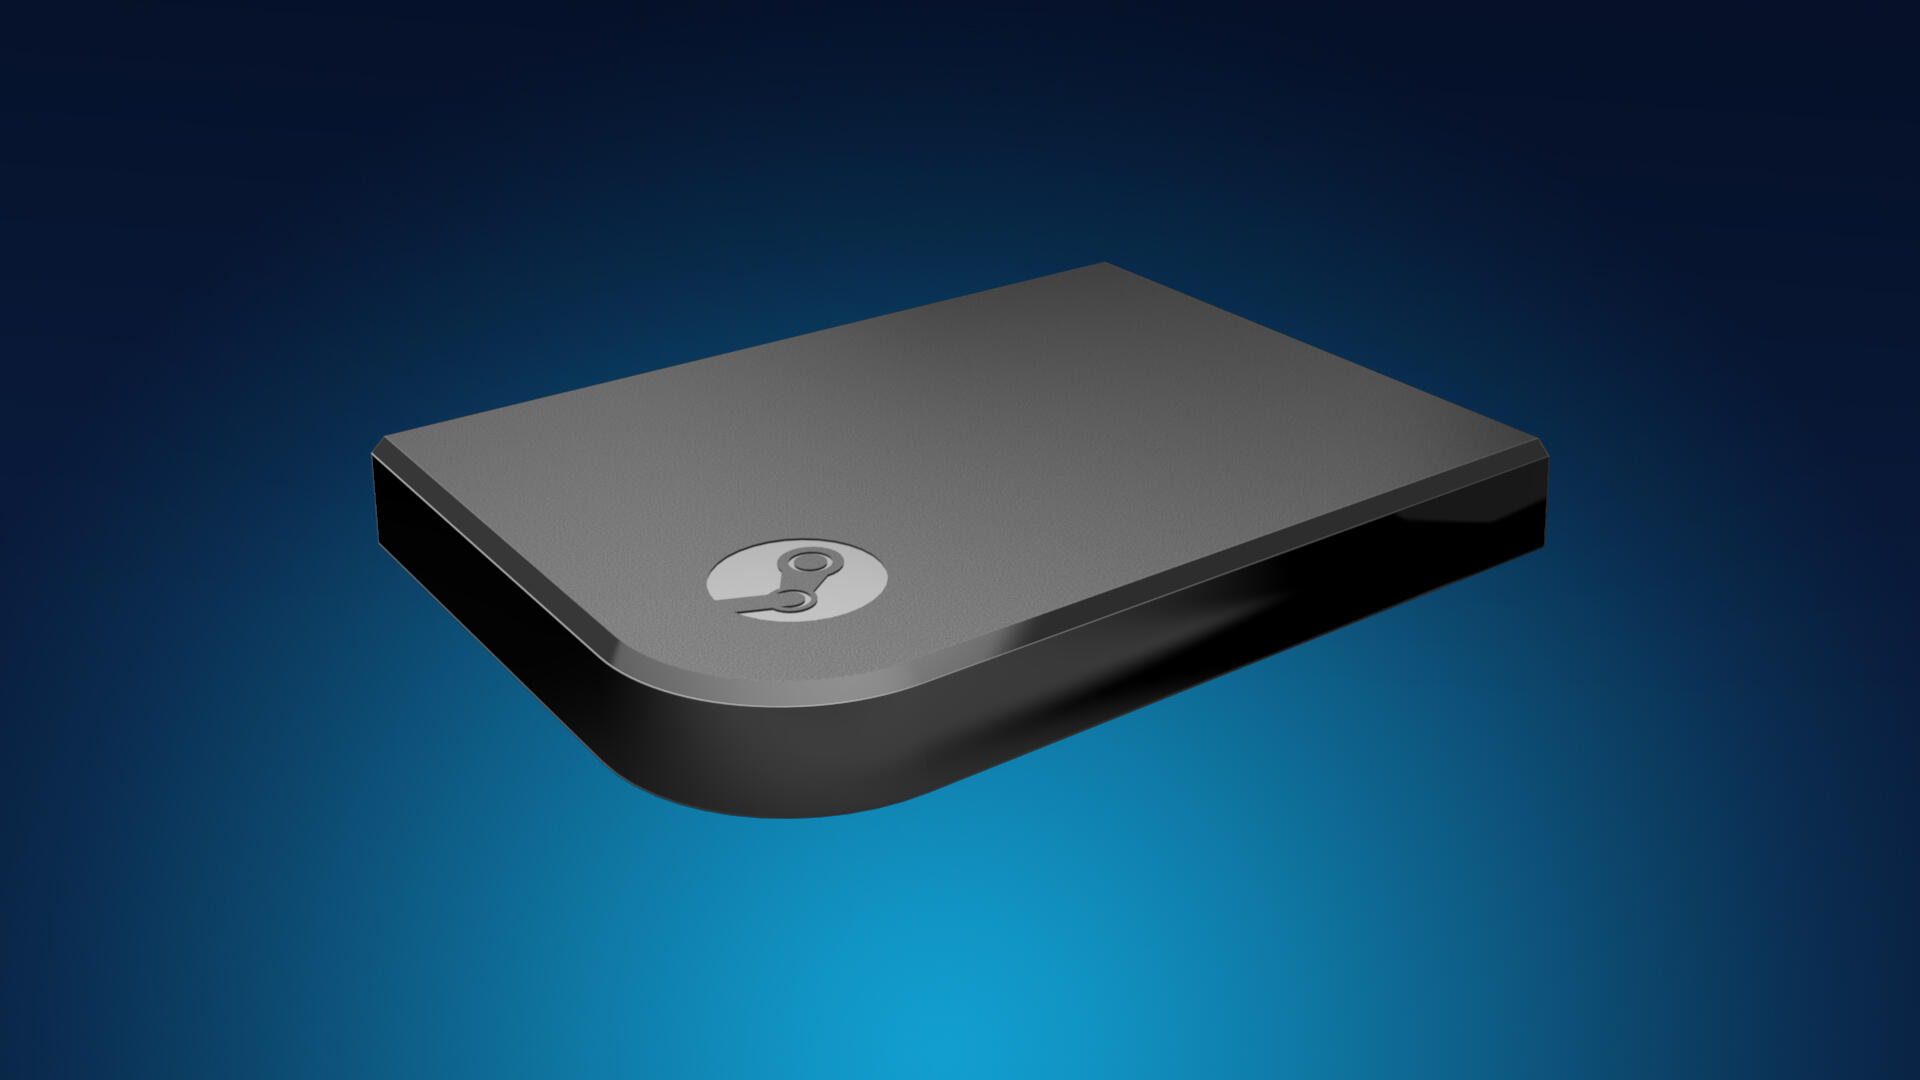 Valve's Steam Link App Will Let You Stream PC Games to Your